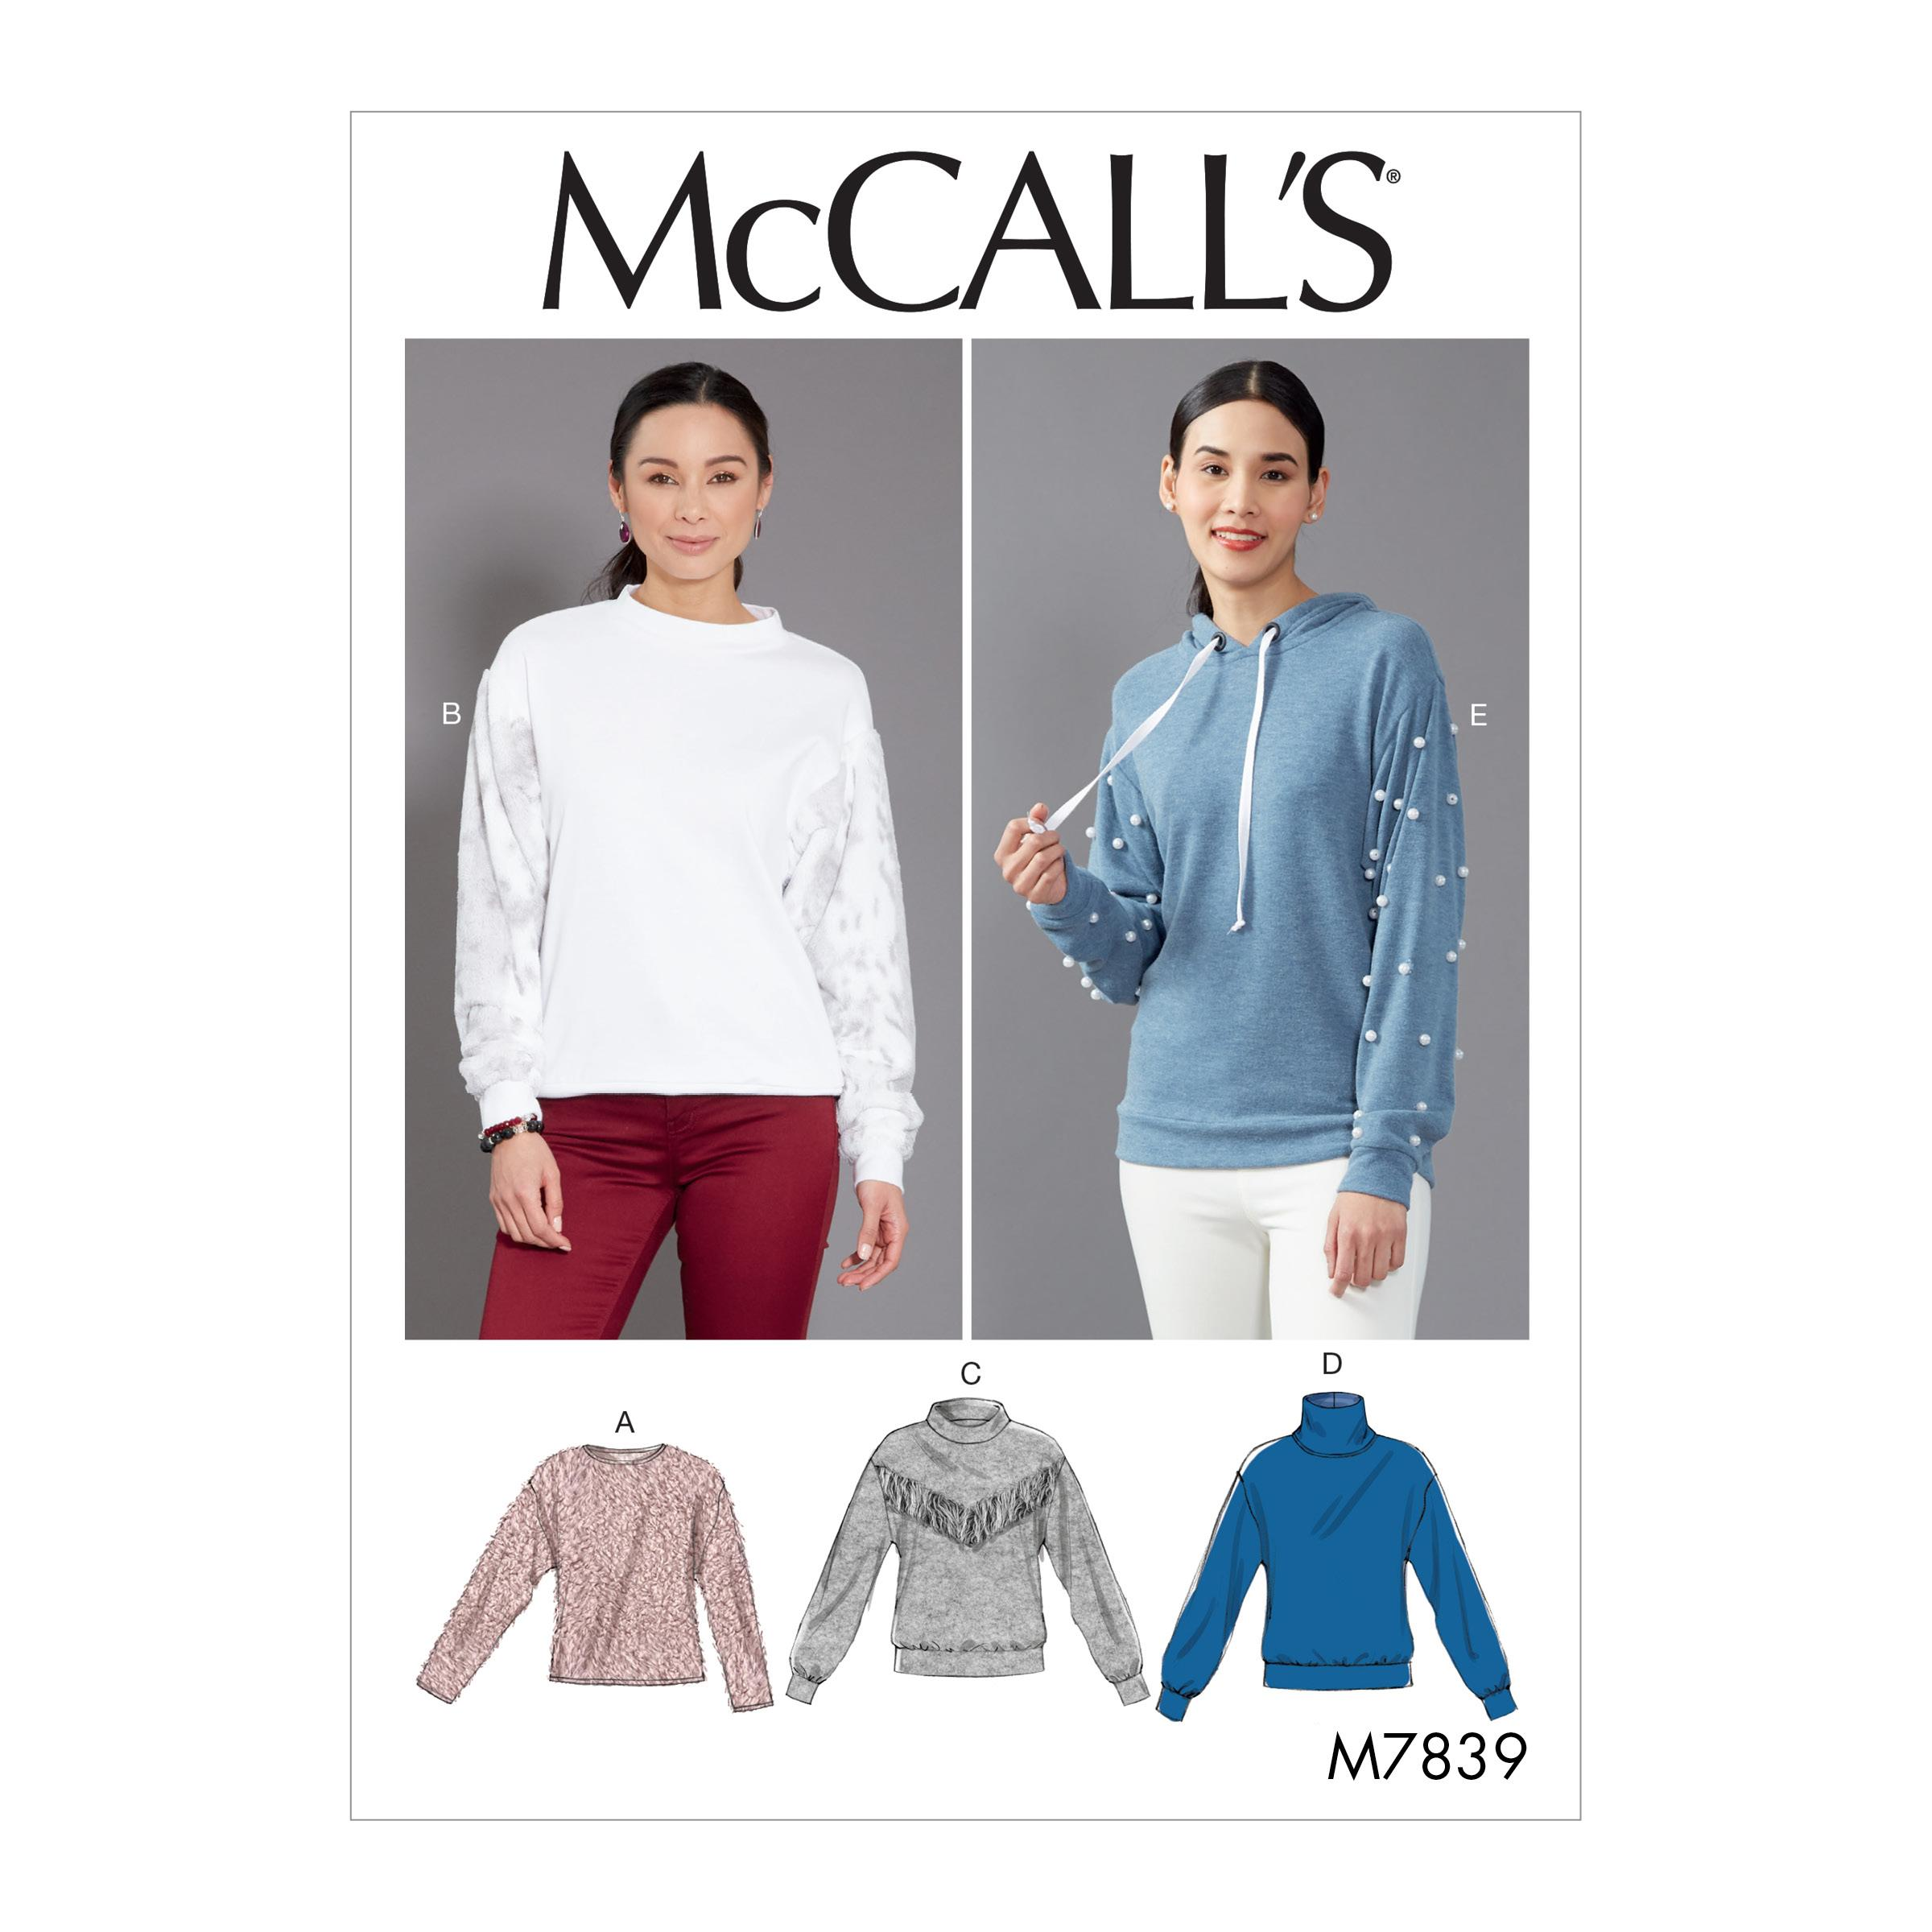 McCalls M7839 Misses Tops